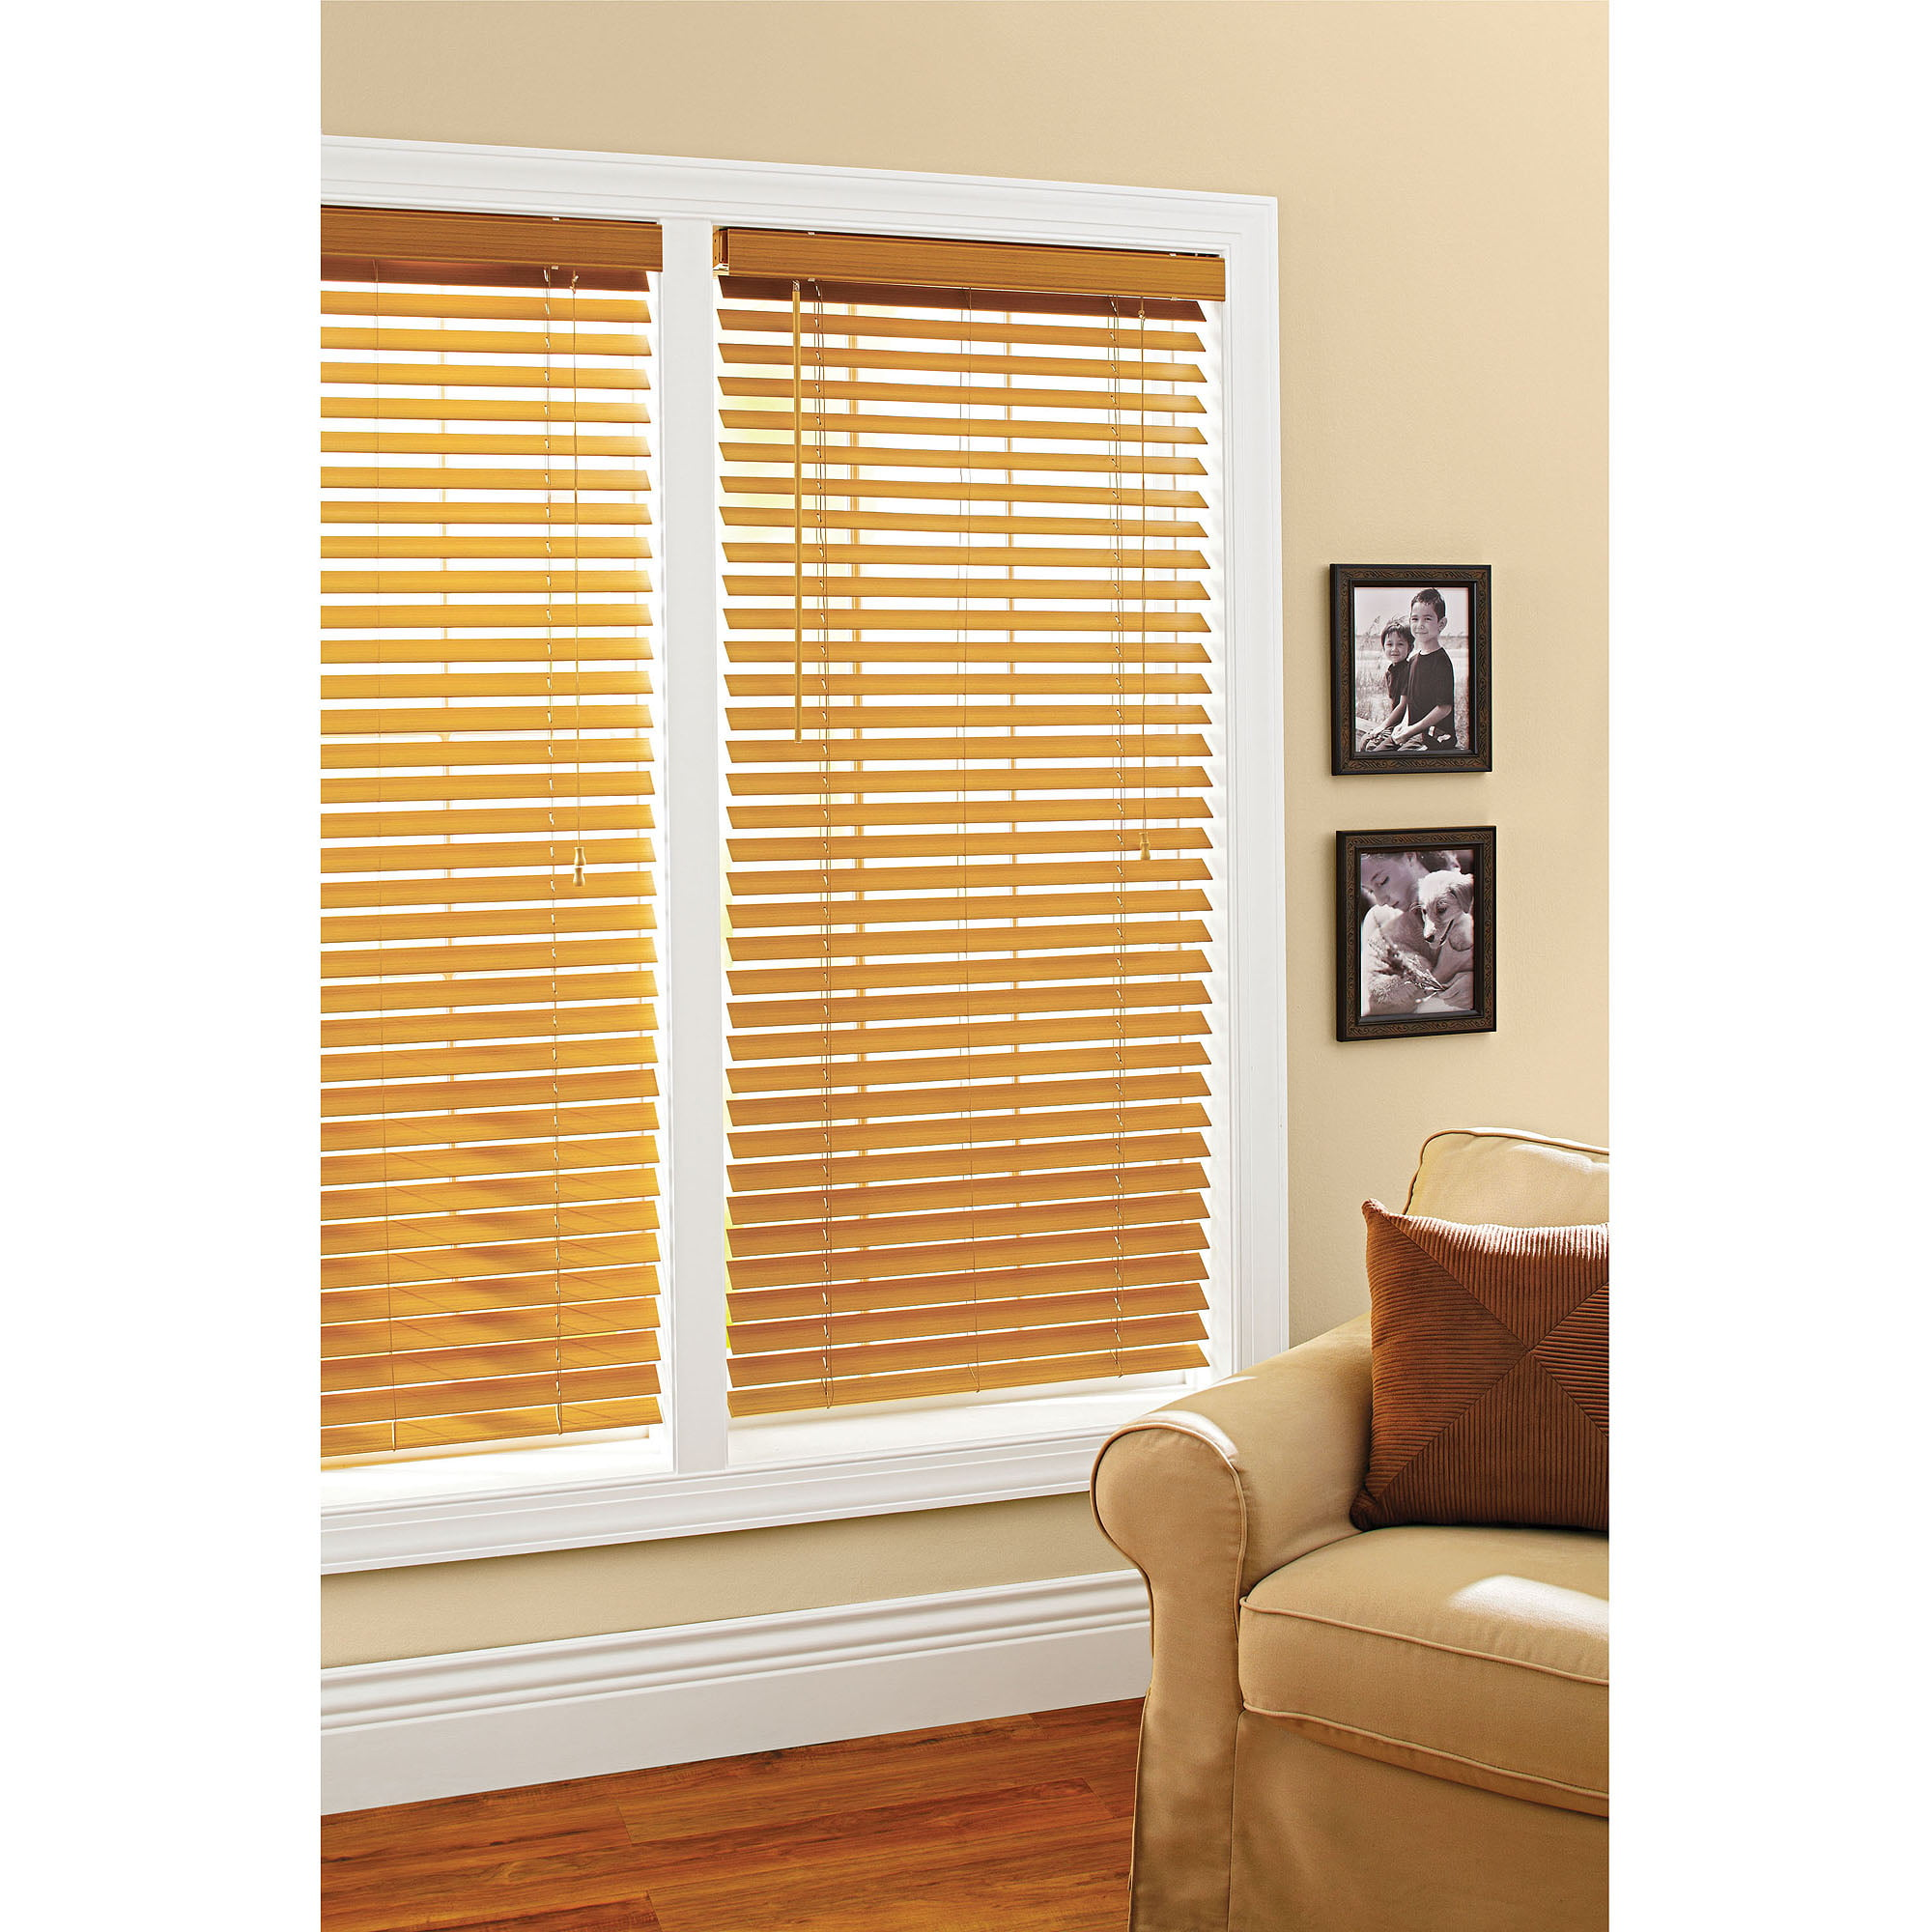 "Better Homes and Gardens 2"" Faux Wood Windows Blinds Oak"